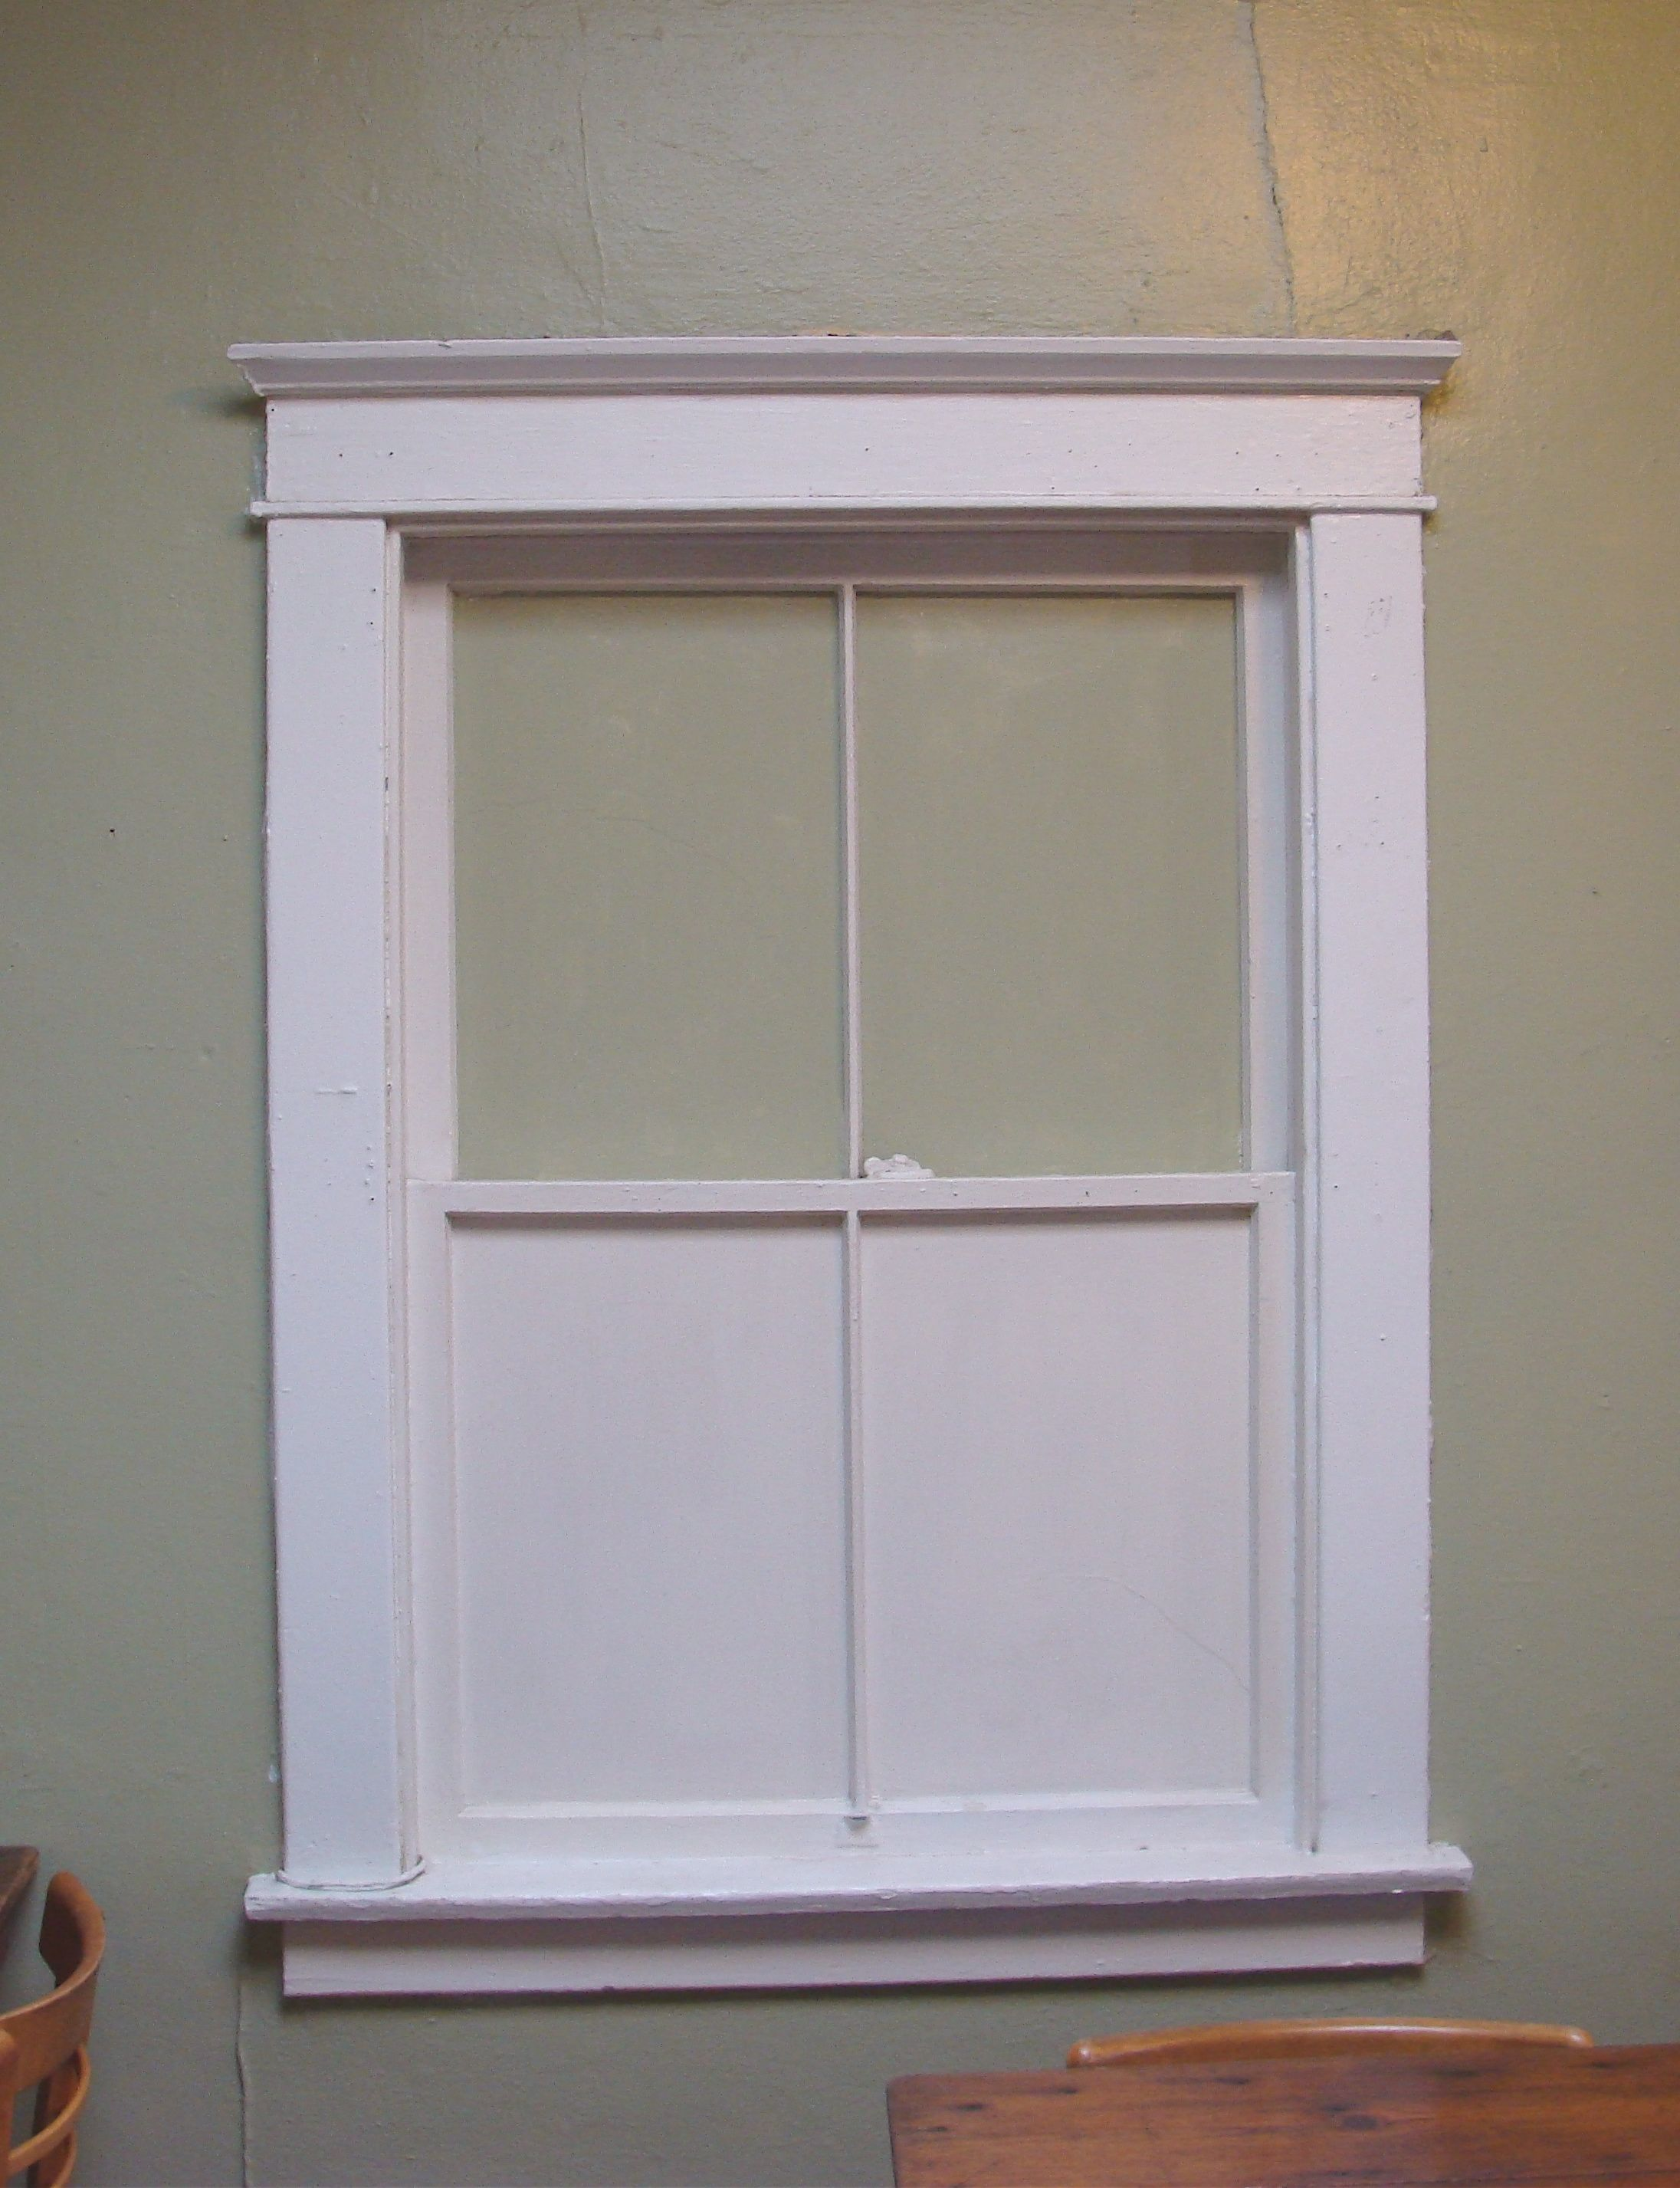 Craftsman window trim styles - Find This Pin And More On House Ideas A Craftsman Style Window